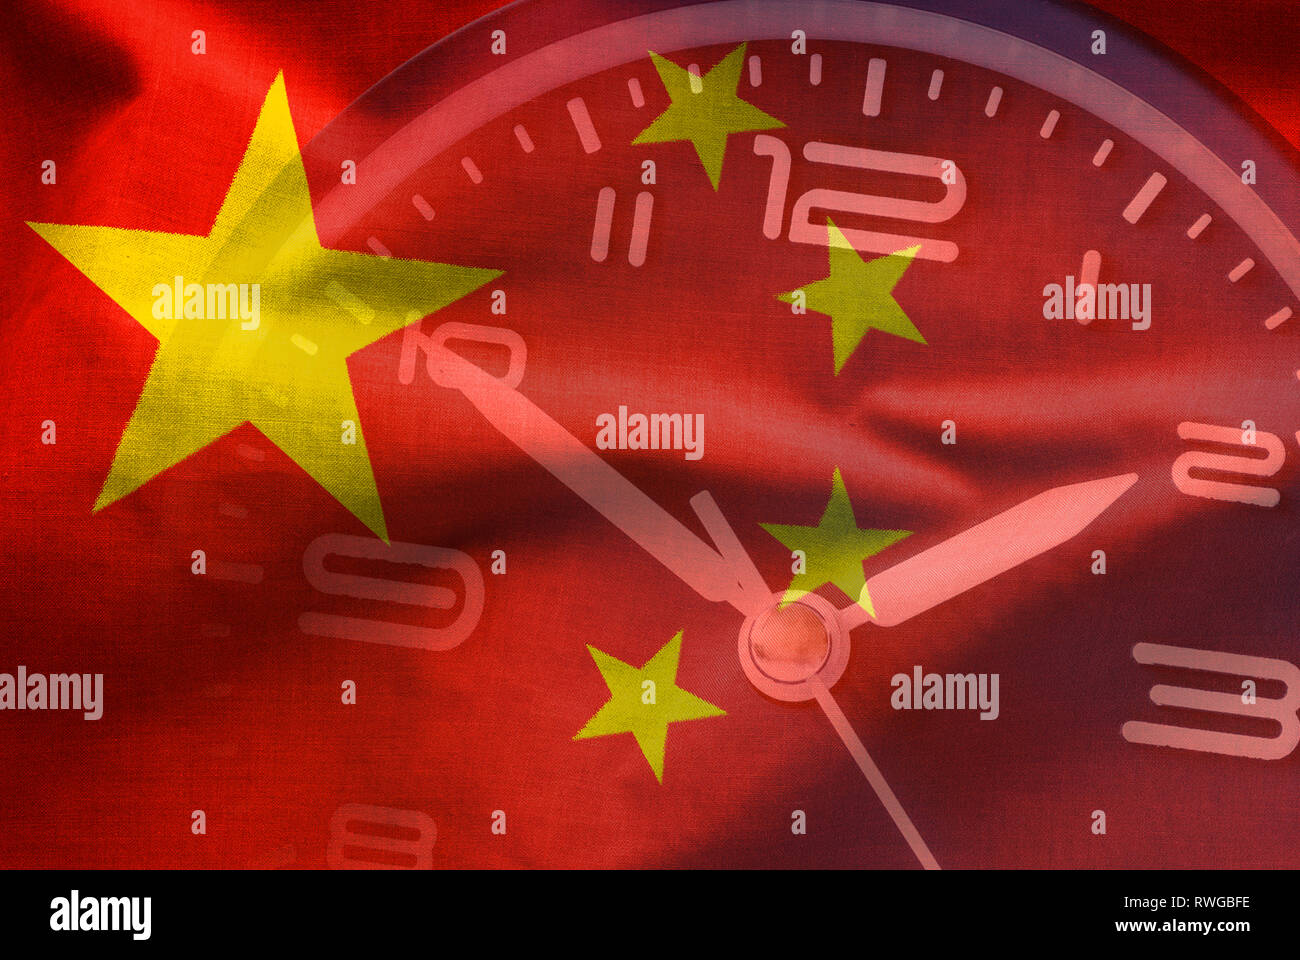 Composite overlay of the Chinese flag and a clock dial depicting the time, a countdown or deadline in a full frame background - Stock Image